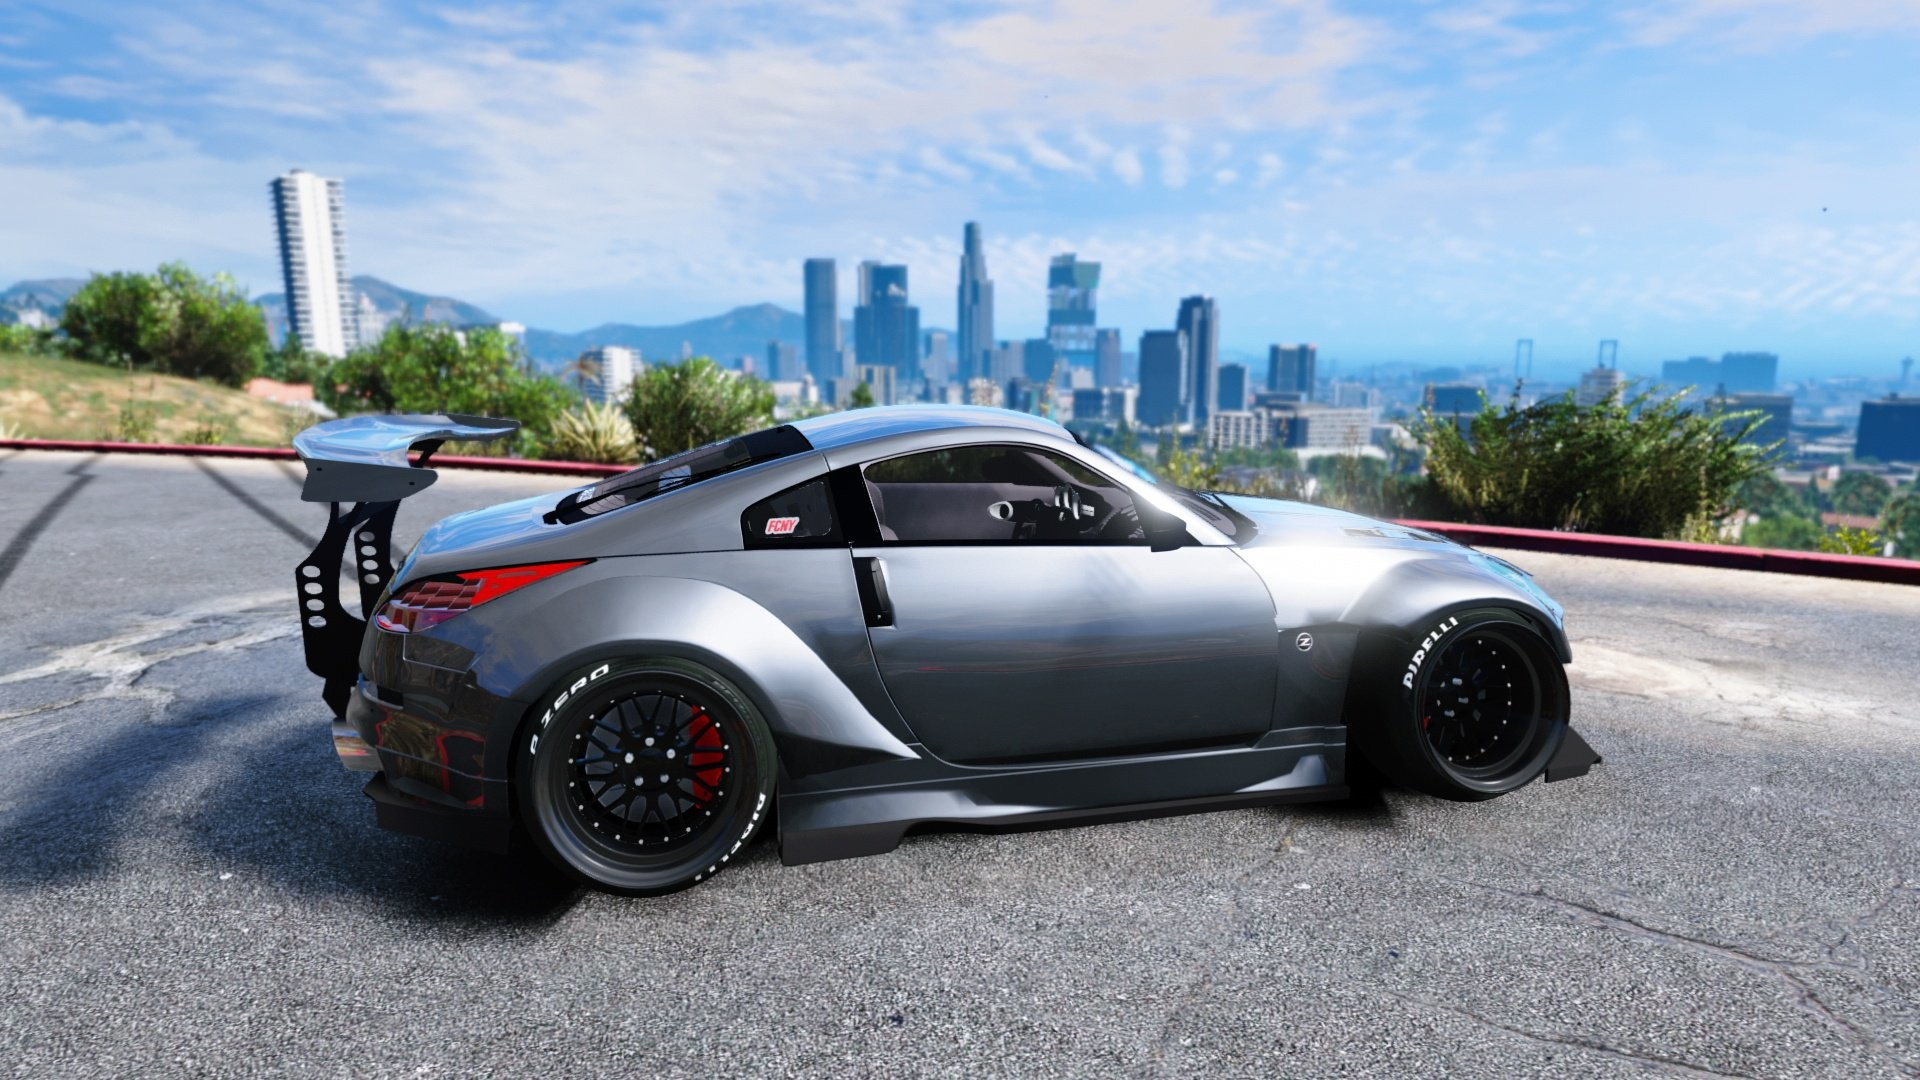 Res: 1920x1080, Rocket Bunny Kit, Nissan 350z